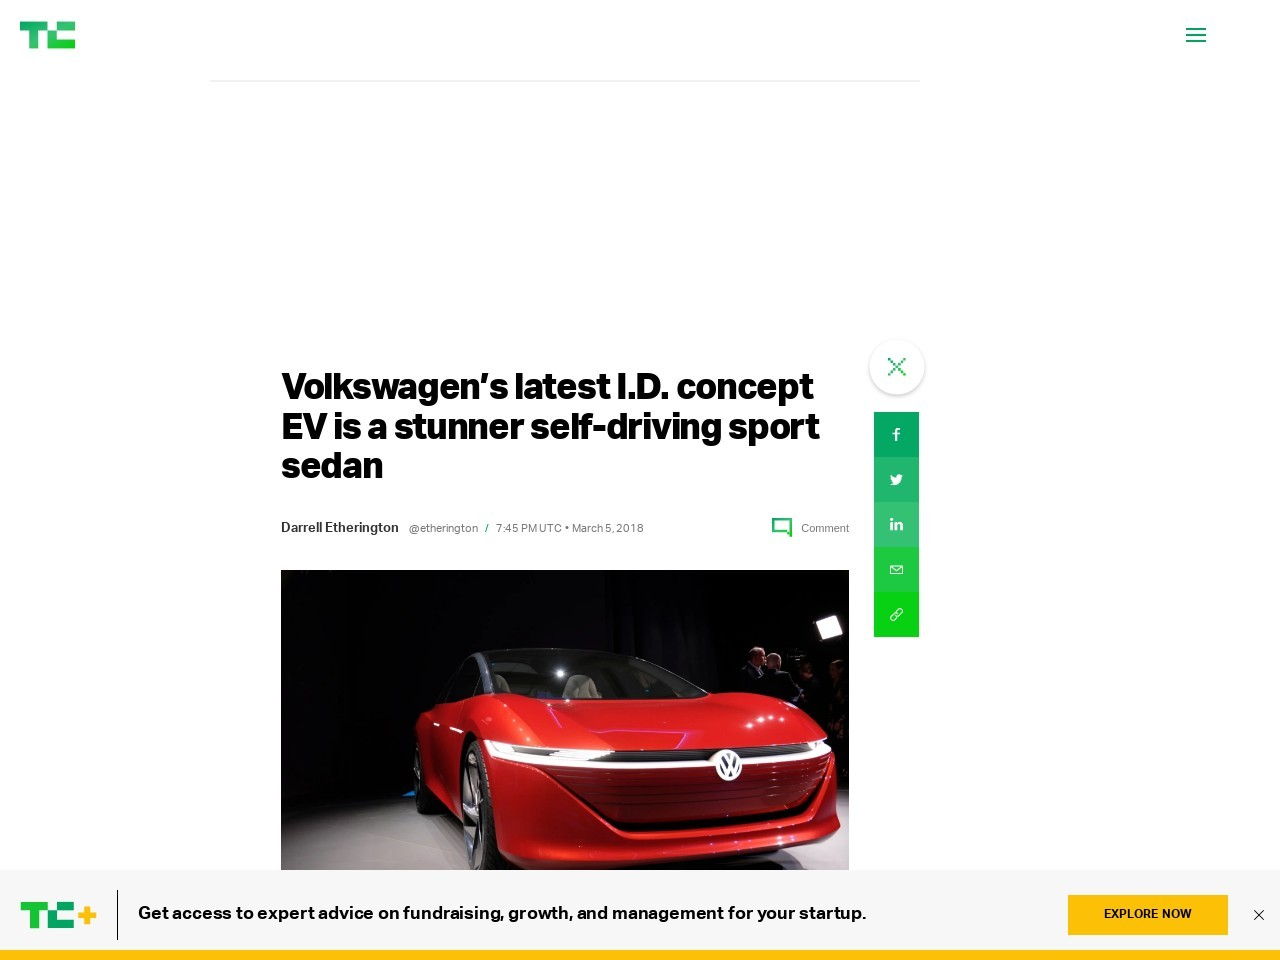 Volkswagen's latest I.D. concept EV is a